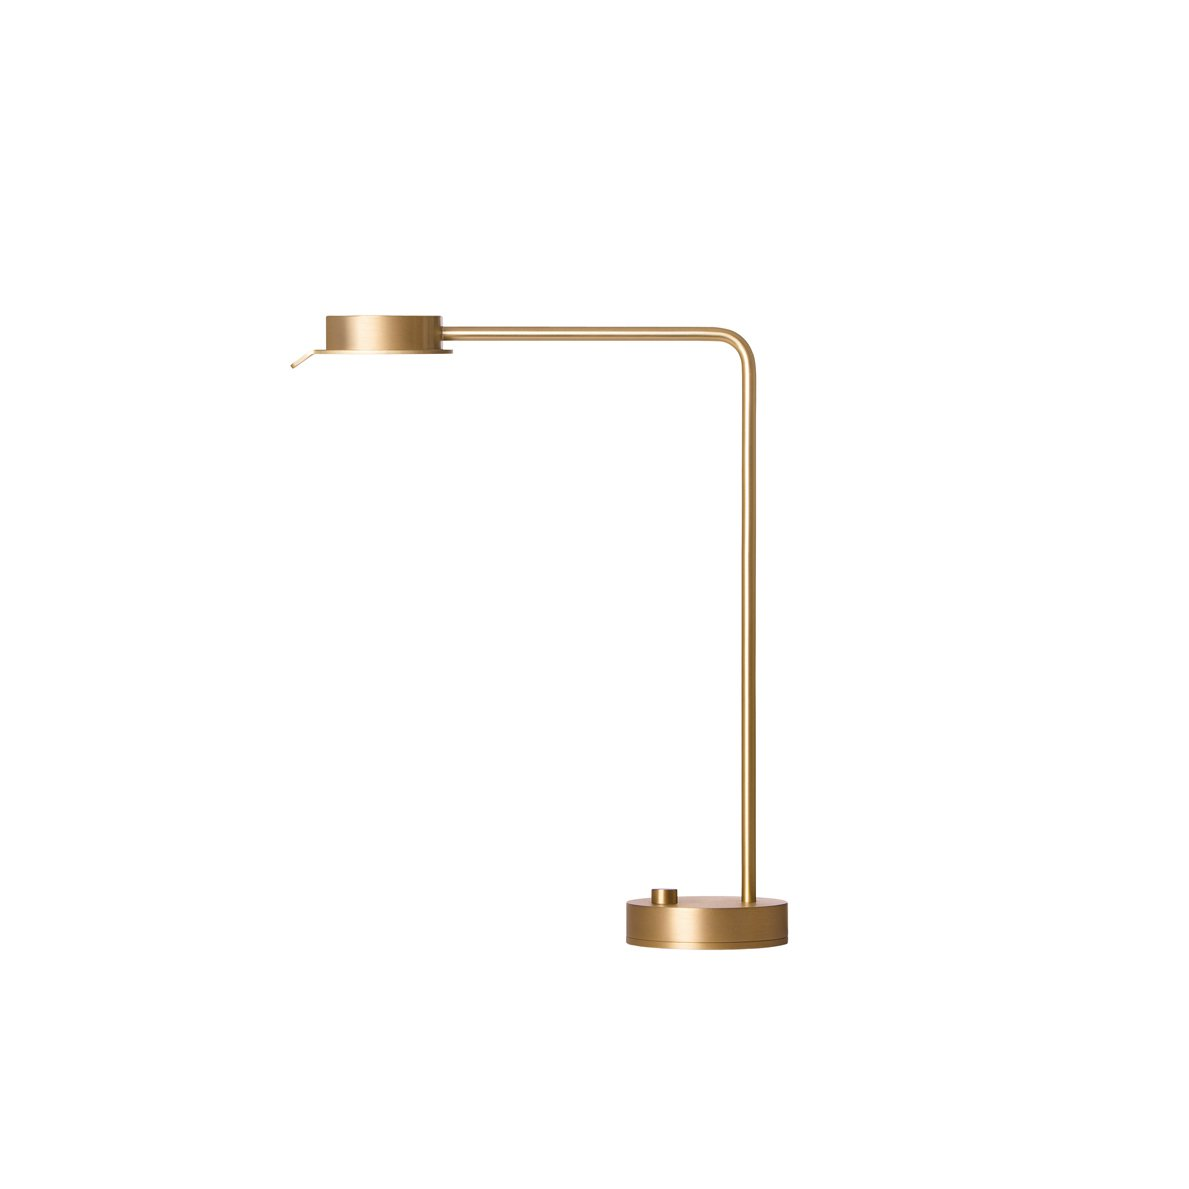 British architect David Chipperfield's w102 Brass Table Lamp for Wästberg is sleek, minimal, and fully dimmable.  Fall Design Trend: Gold, Brass, and Copper Accents by Megan Hamaker from Shine On